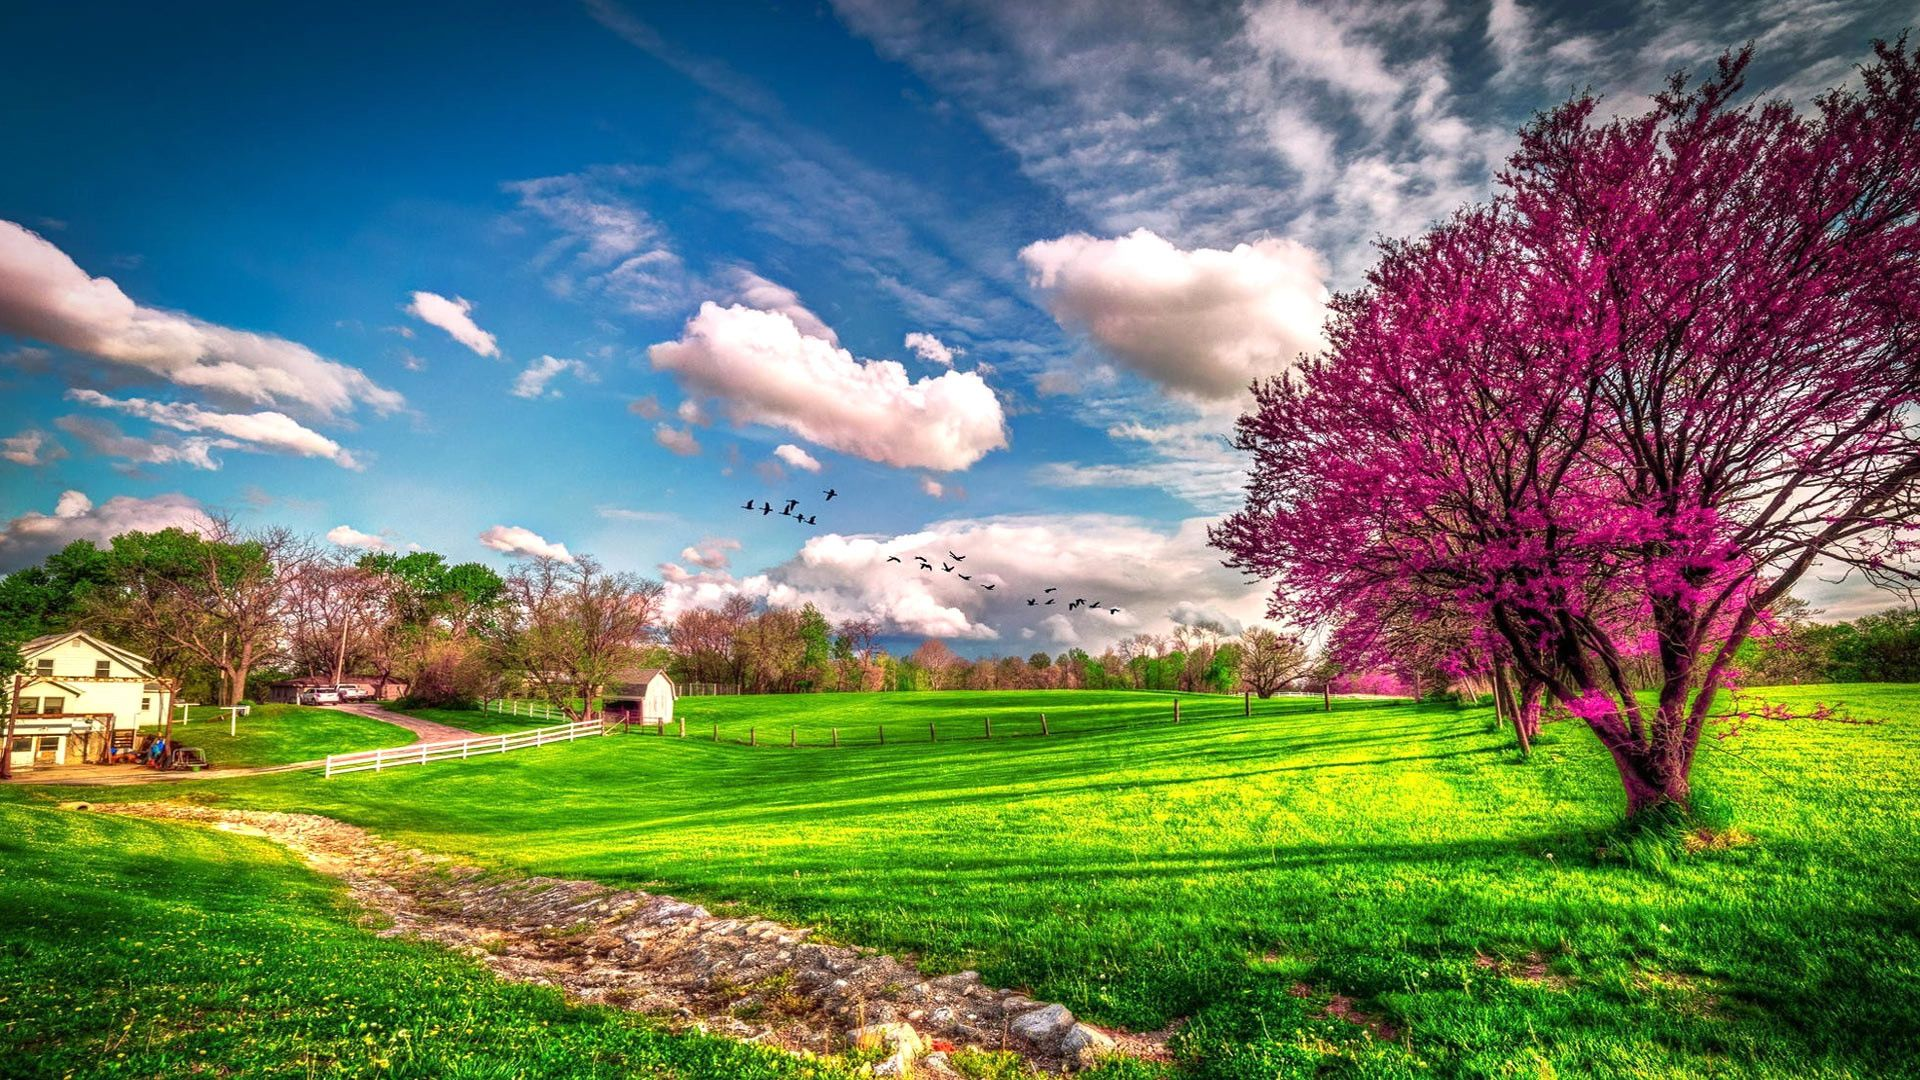 Wallpaper Download 1920x1080 Landscape Beautiful Spring Nature Spring Wallpapers Seasons Wallpapers Do Spring Wallpaper Scenery Wallpaper Spring Landscape